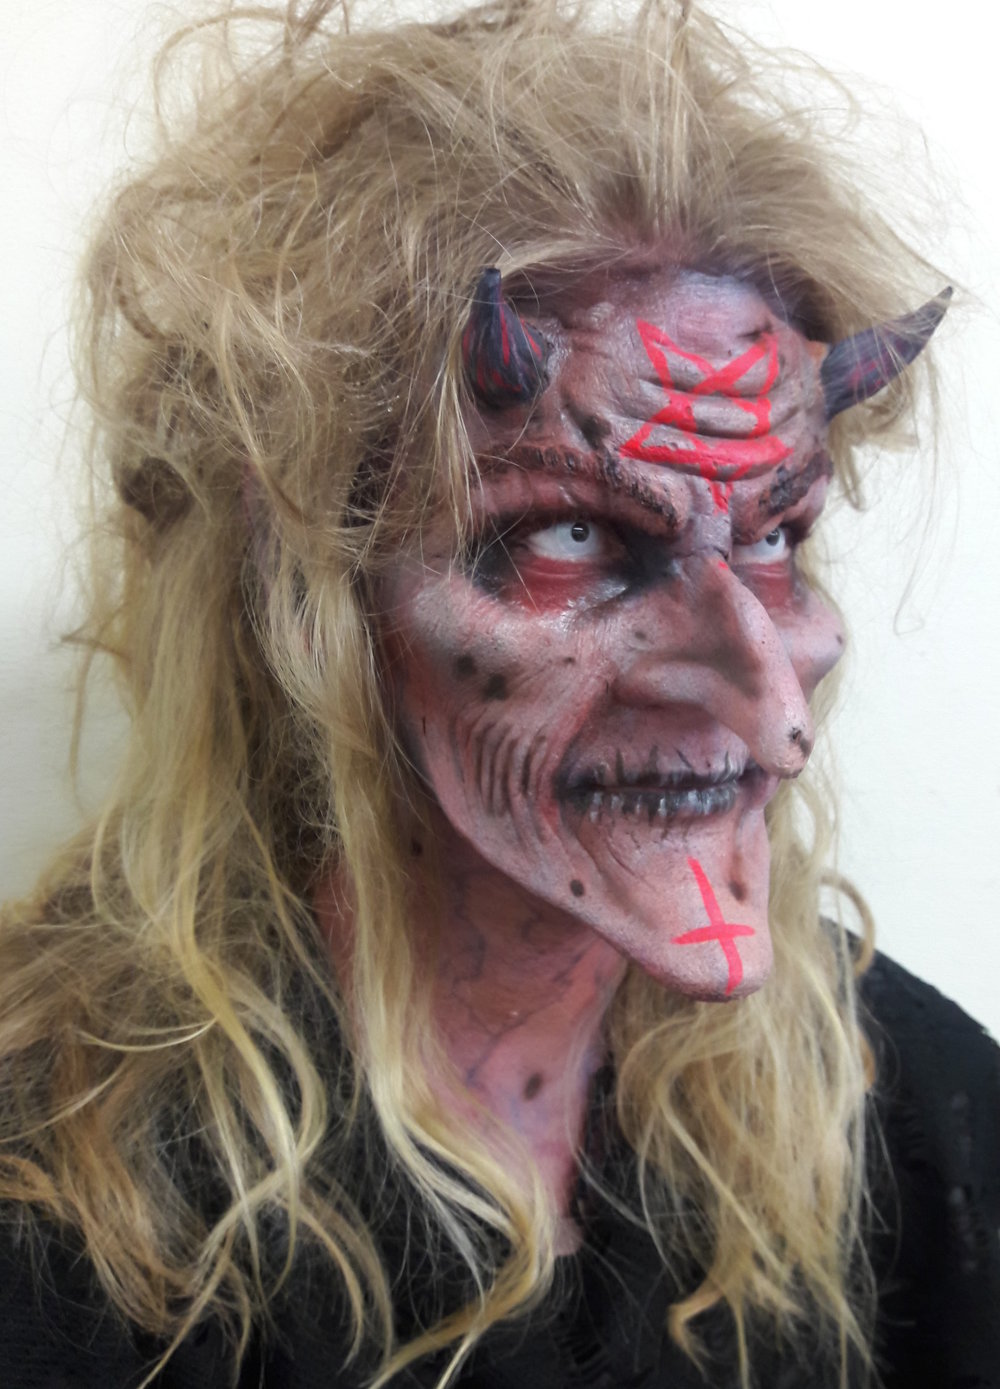 Fright Fest, 2016 Six Flags Magic Mountain Scare Actor: Kristol Remington Prosthetics provided by The Scream Team 45 minute application.